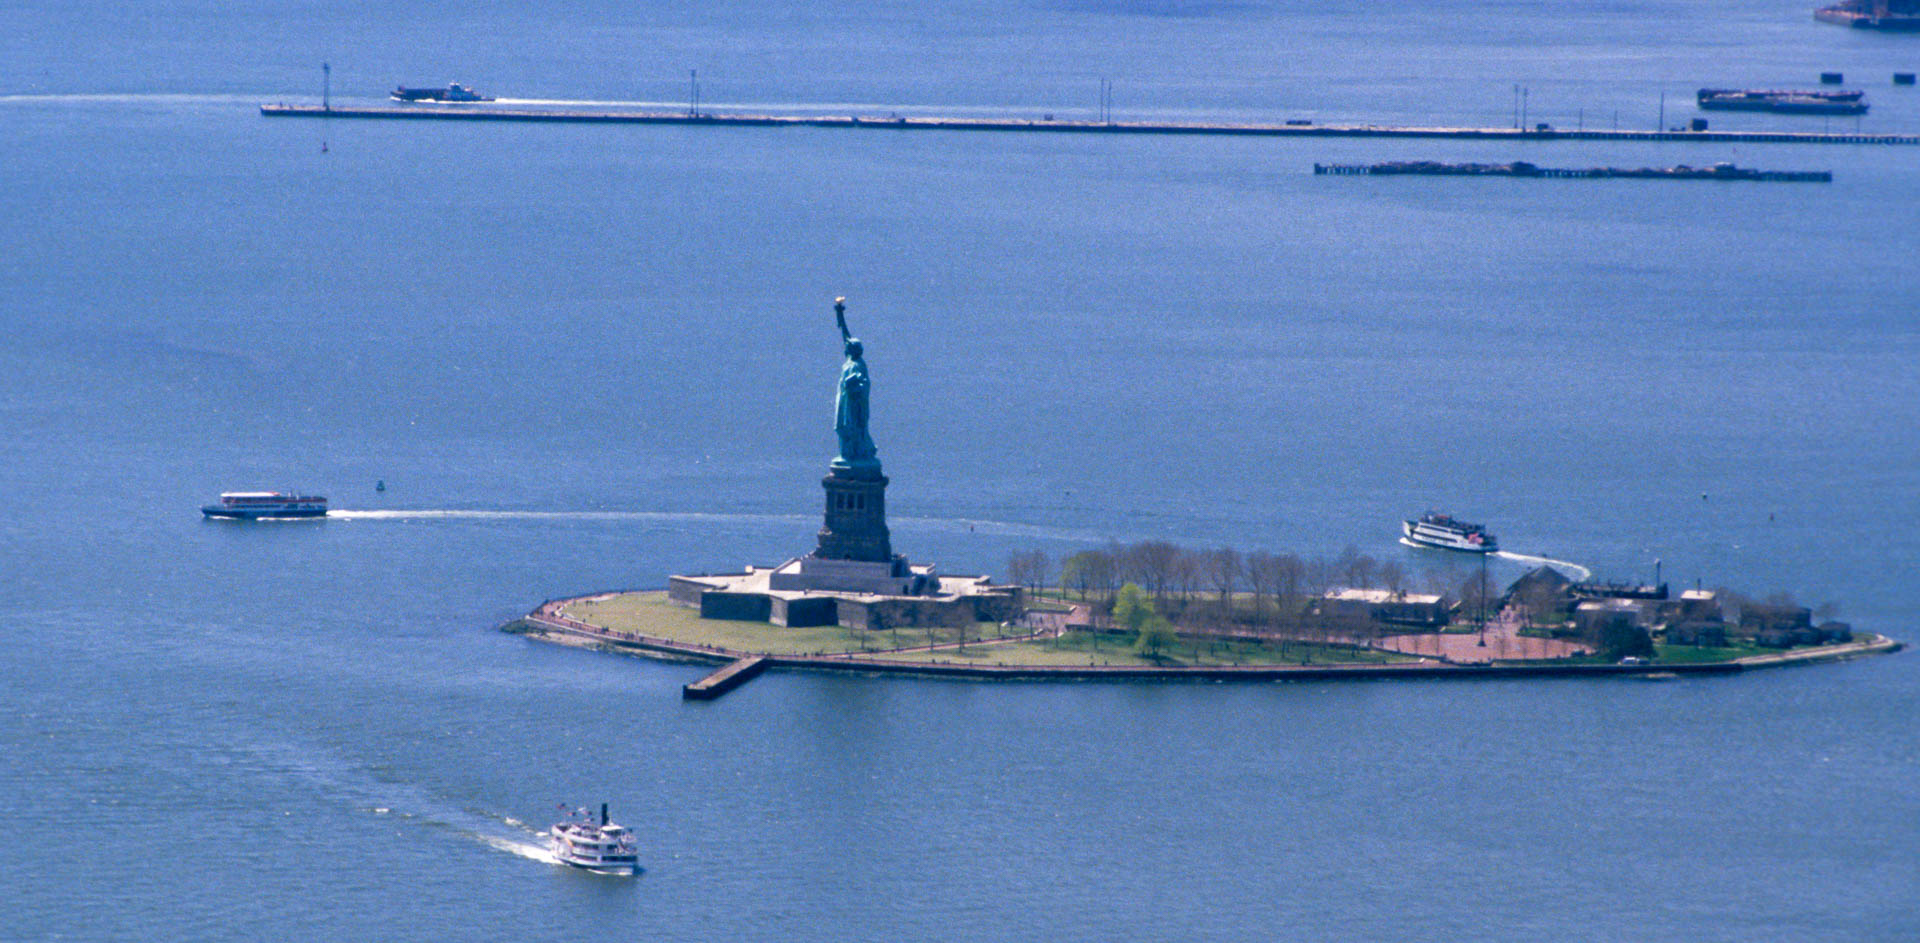 Statue of Liberty seen from the World Trade Center, 1987